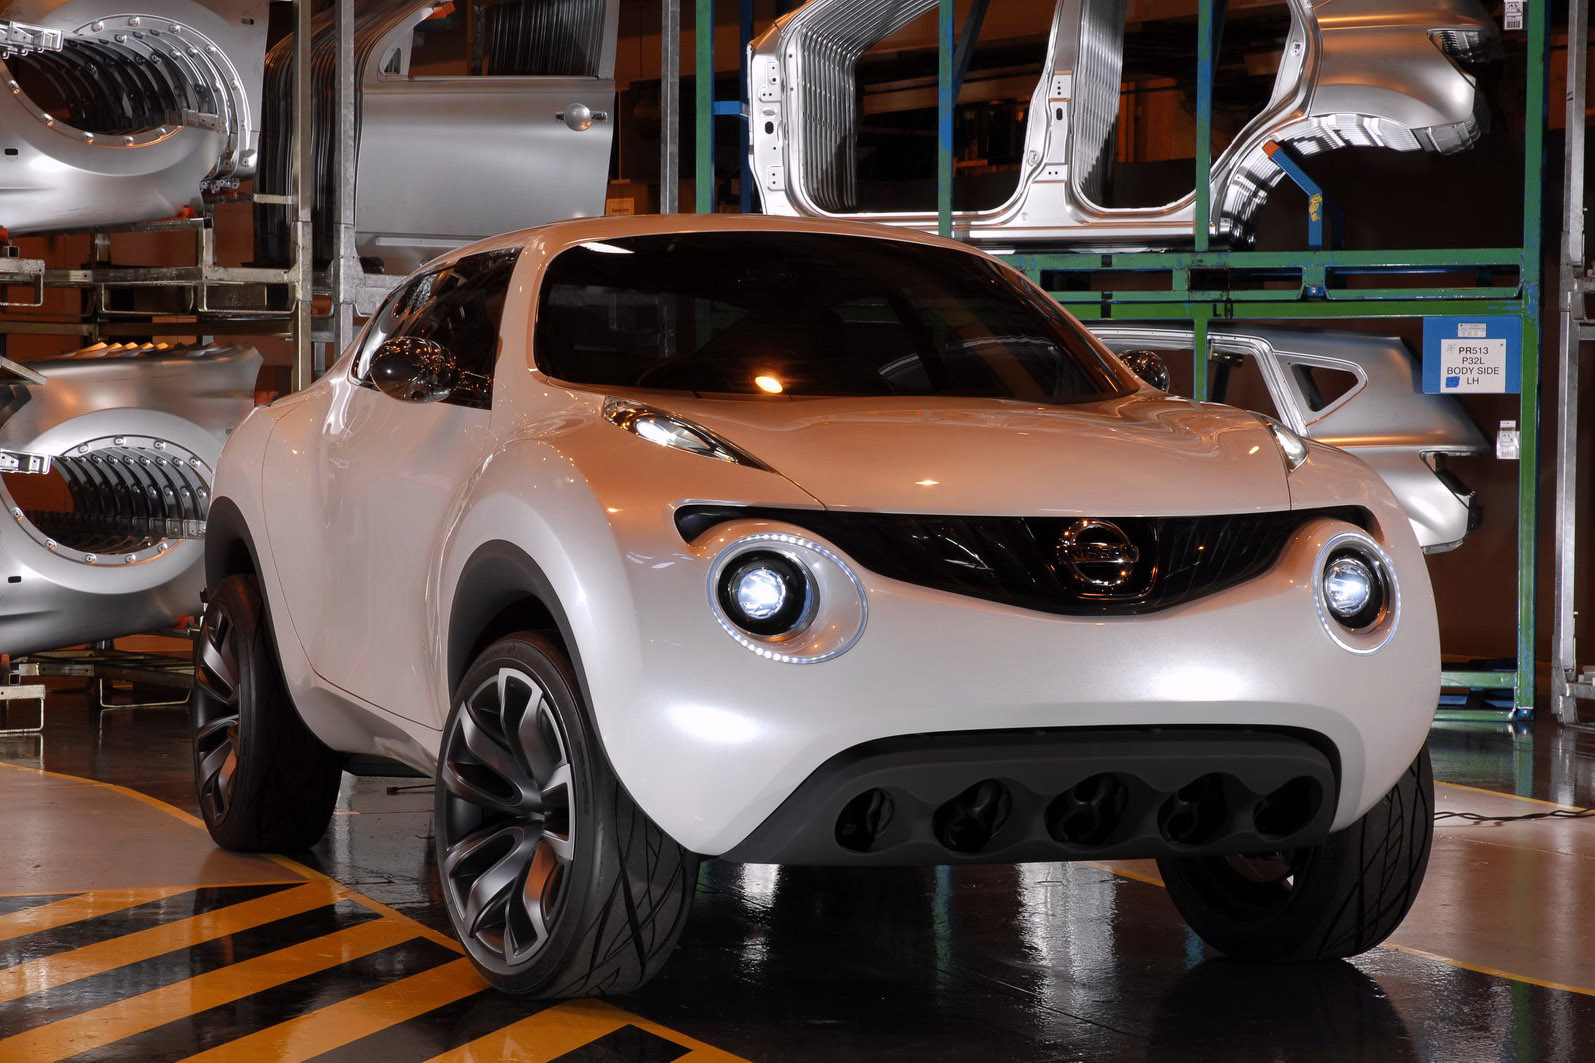 The Latest Nissan Models Juke Takes On City Like You Never Seen Best Infant Car Seat And Stroller For That Will Fit